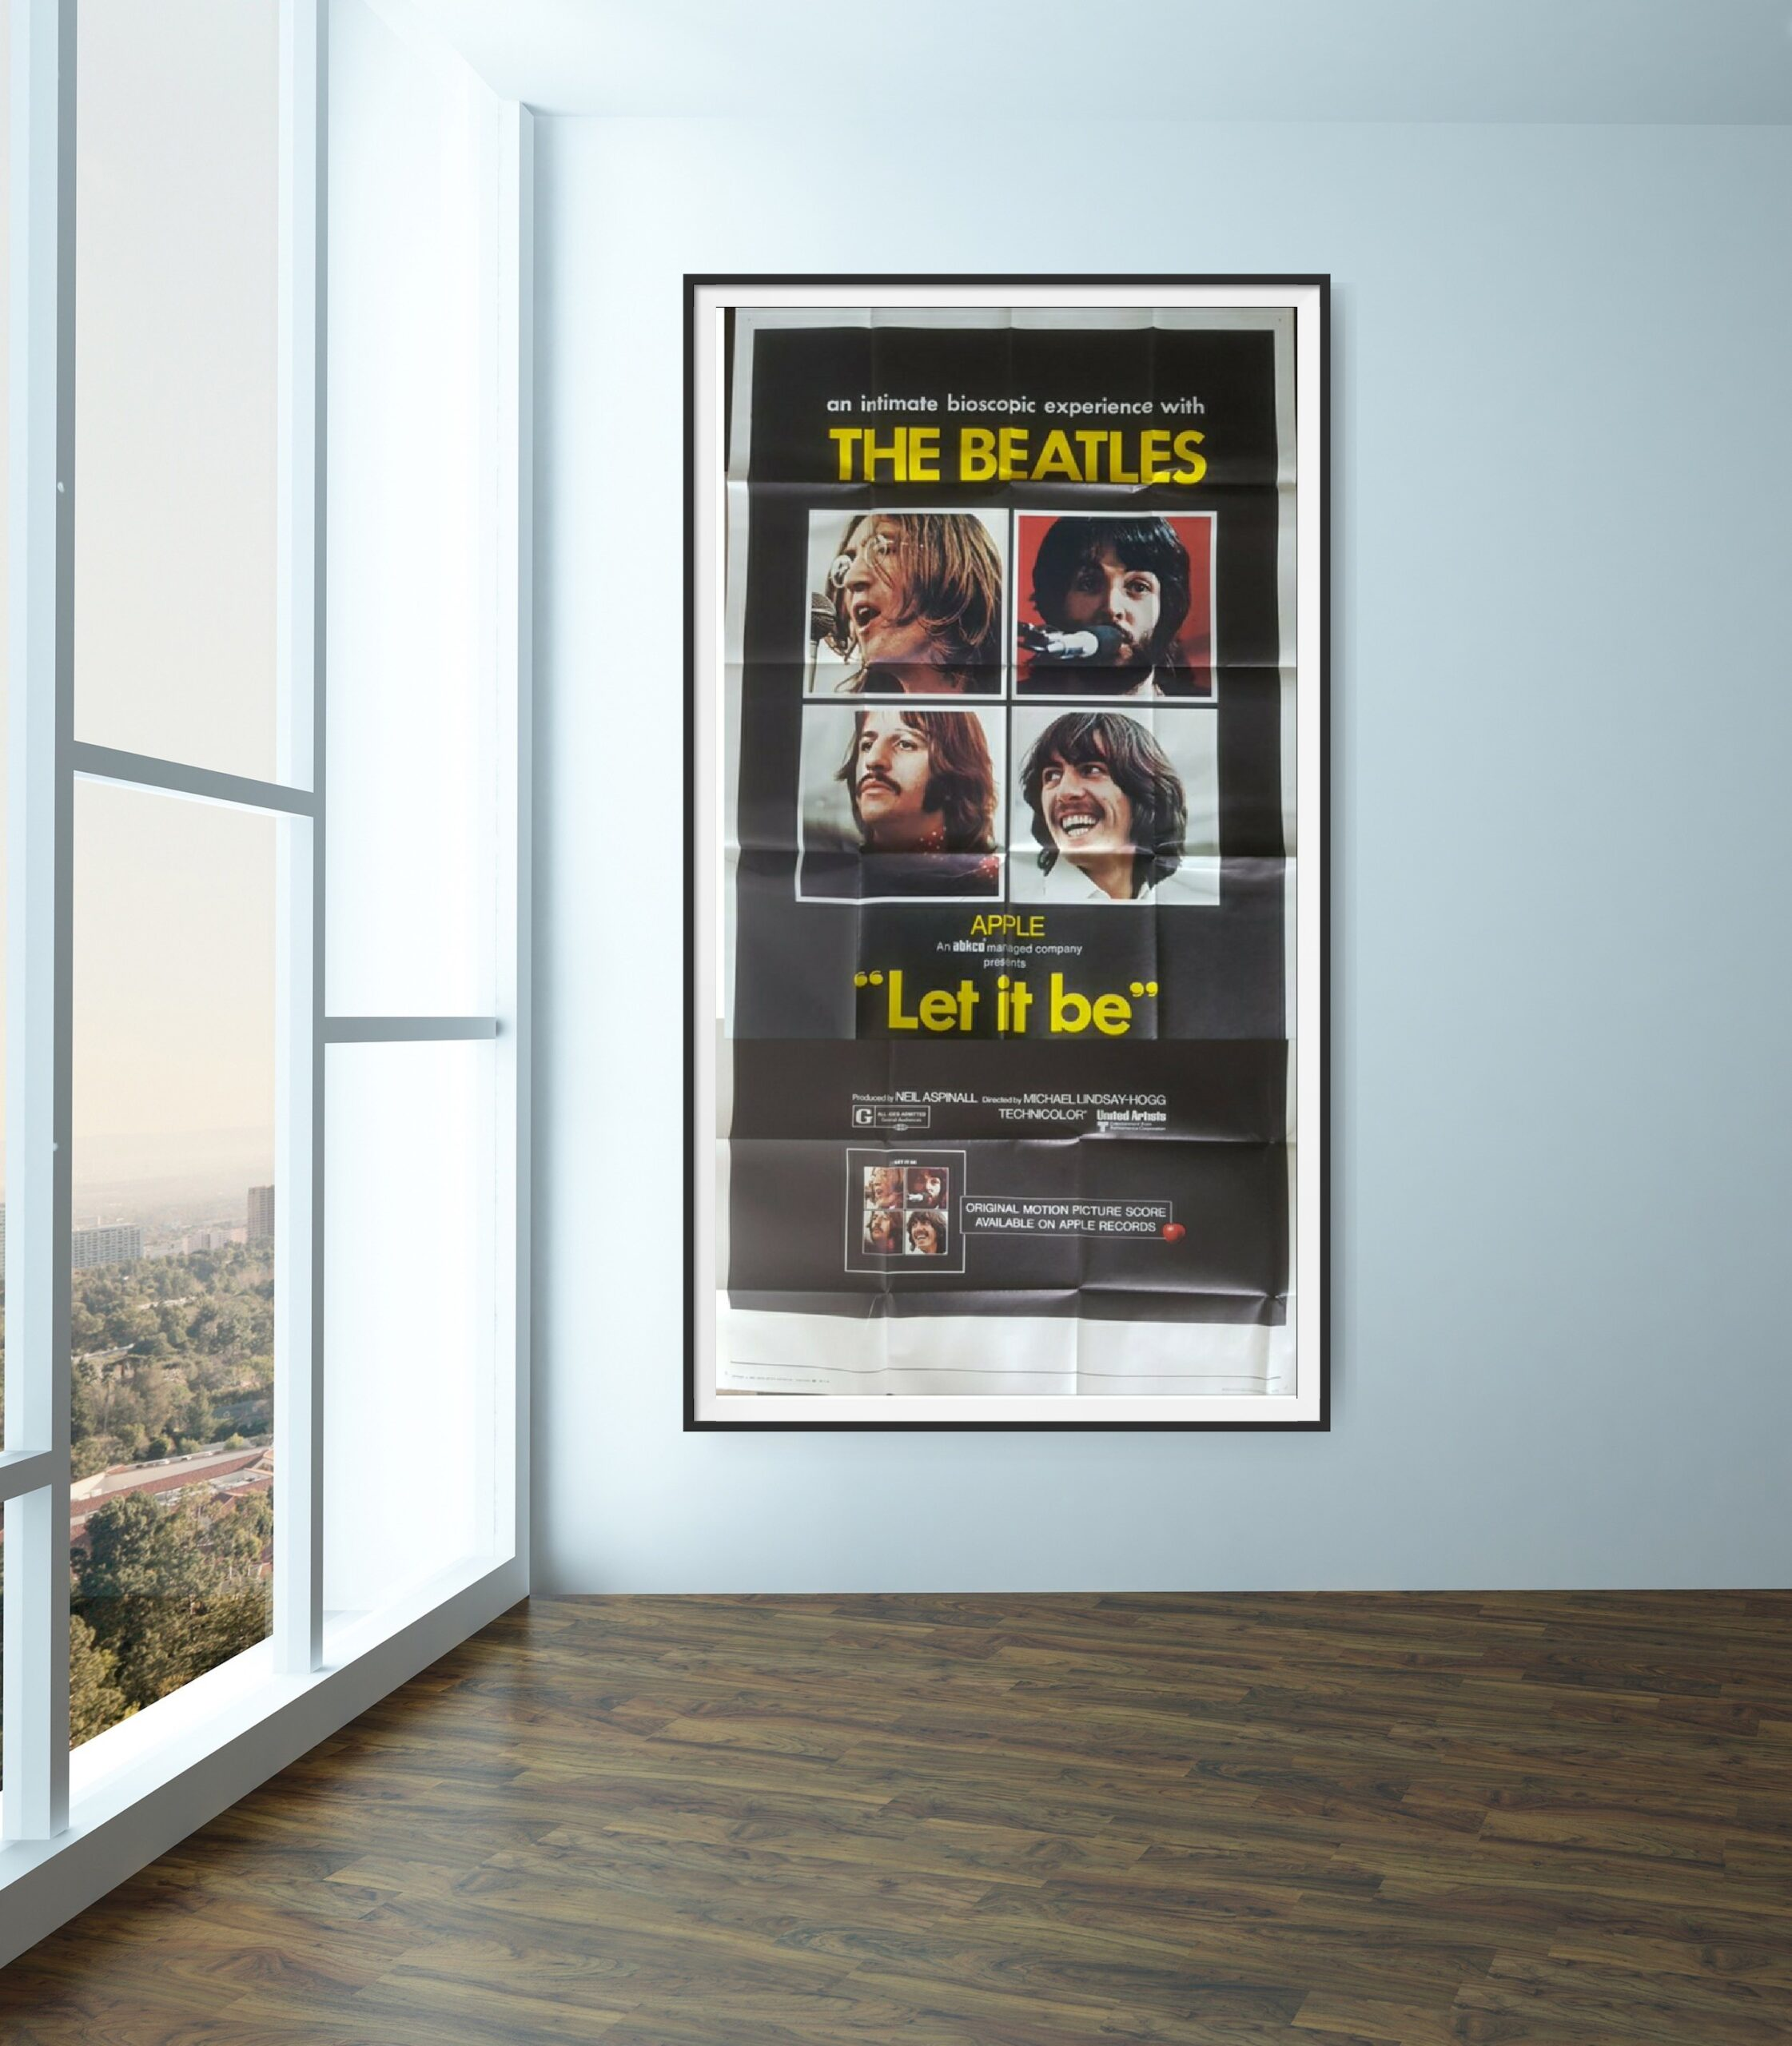 This film poster for Le It Be shows all 4 members of The Beatles.